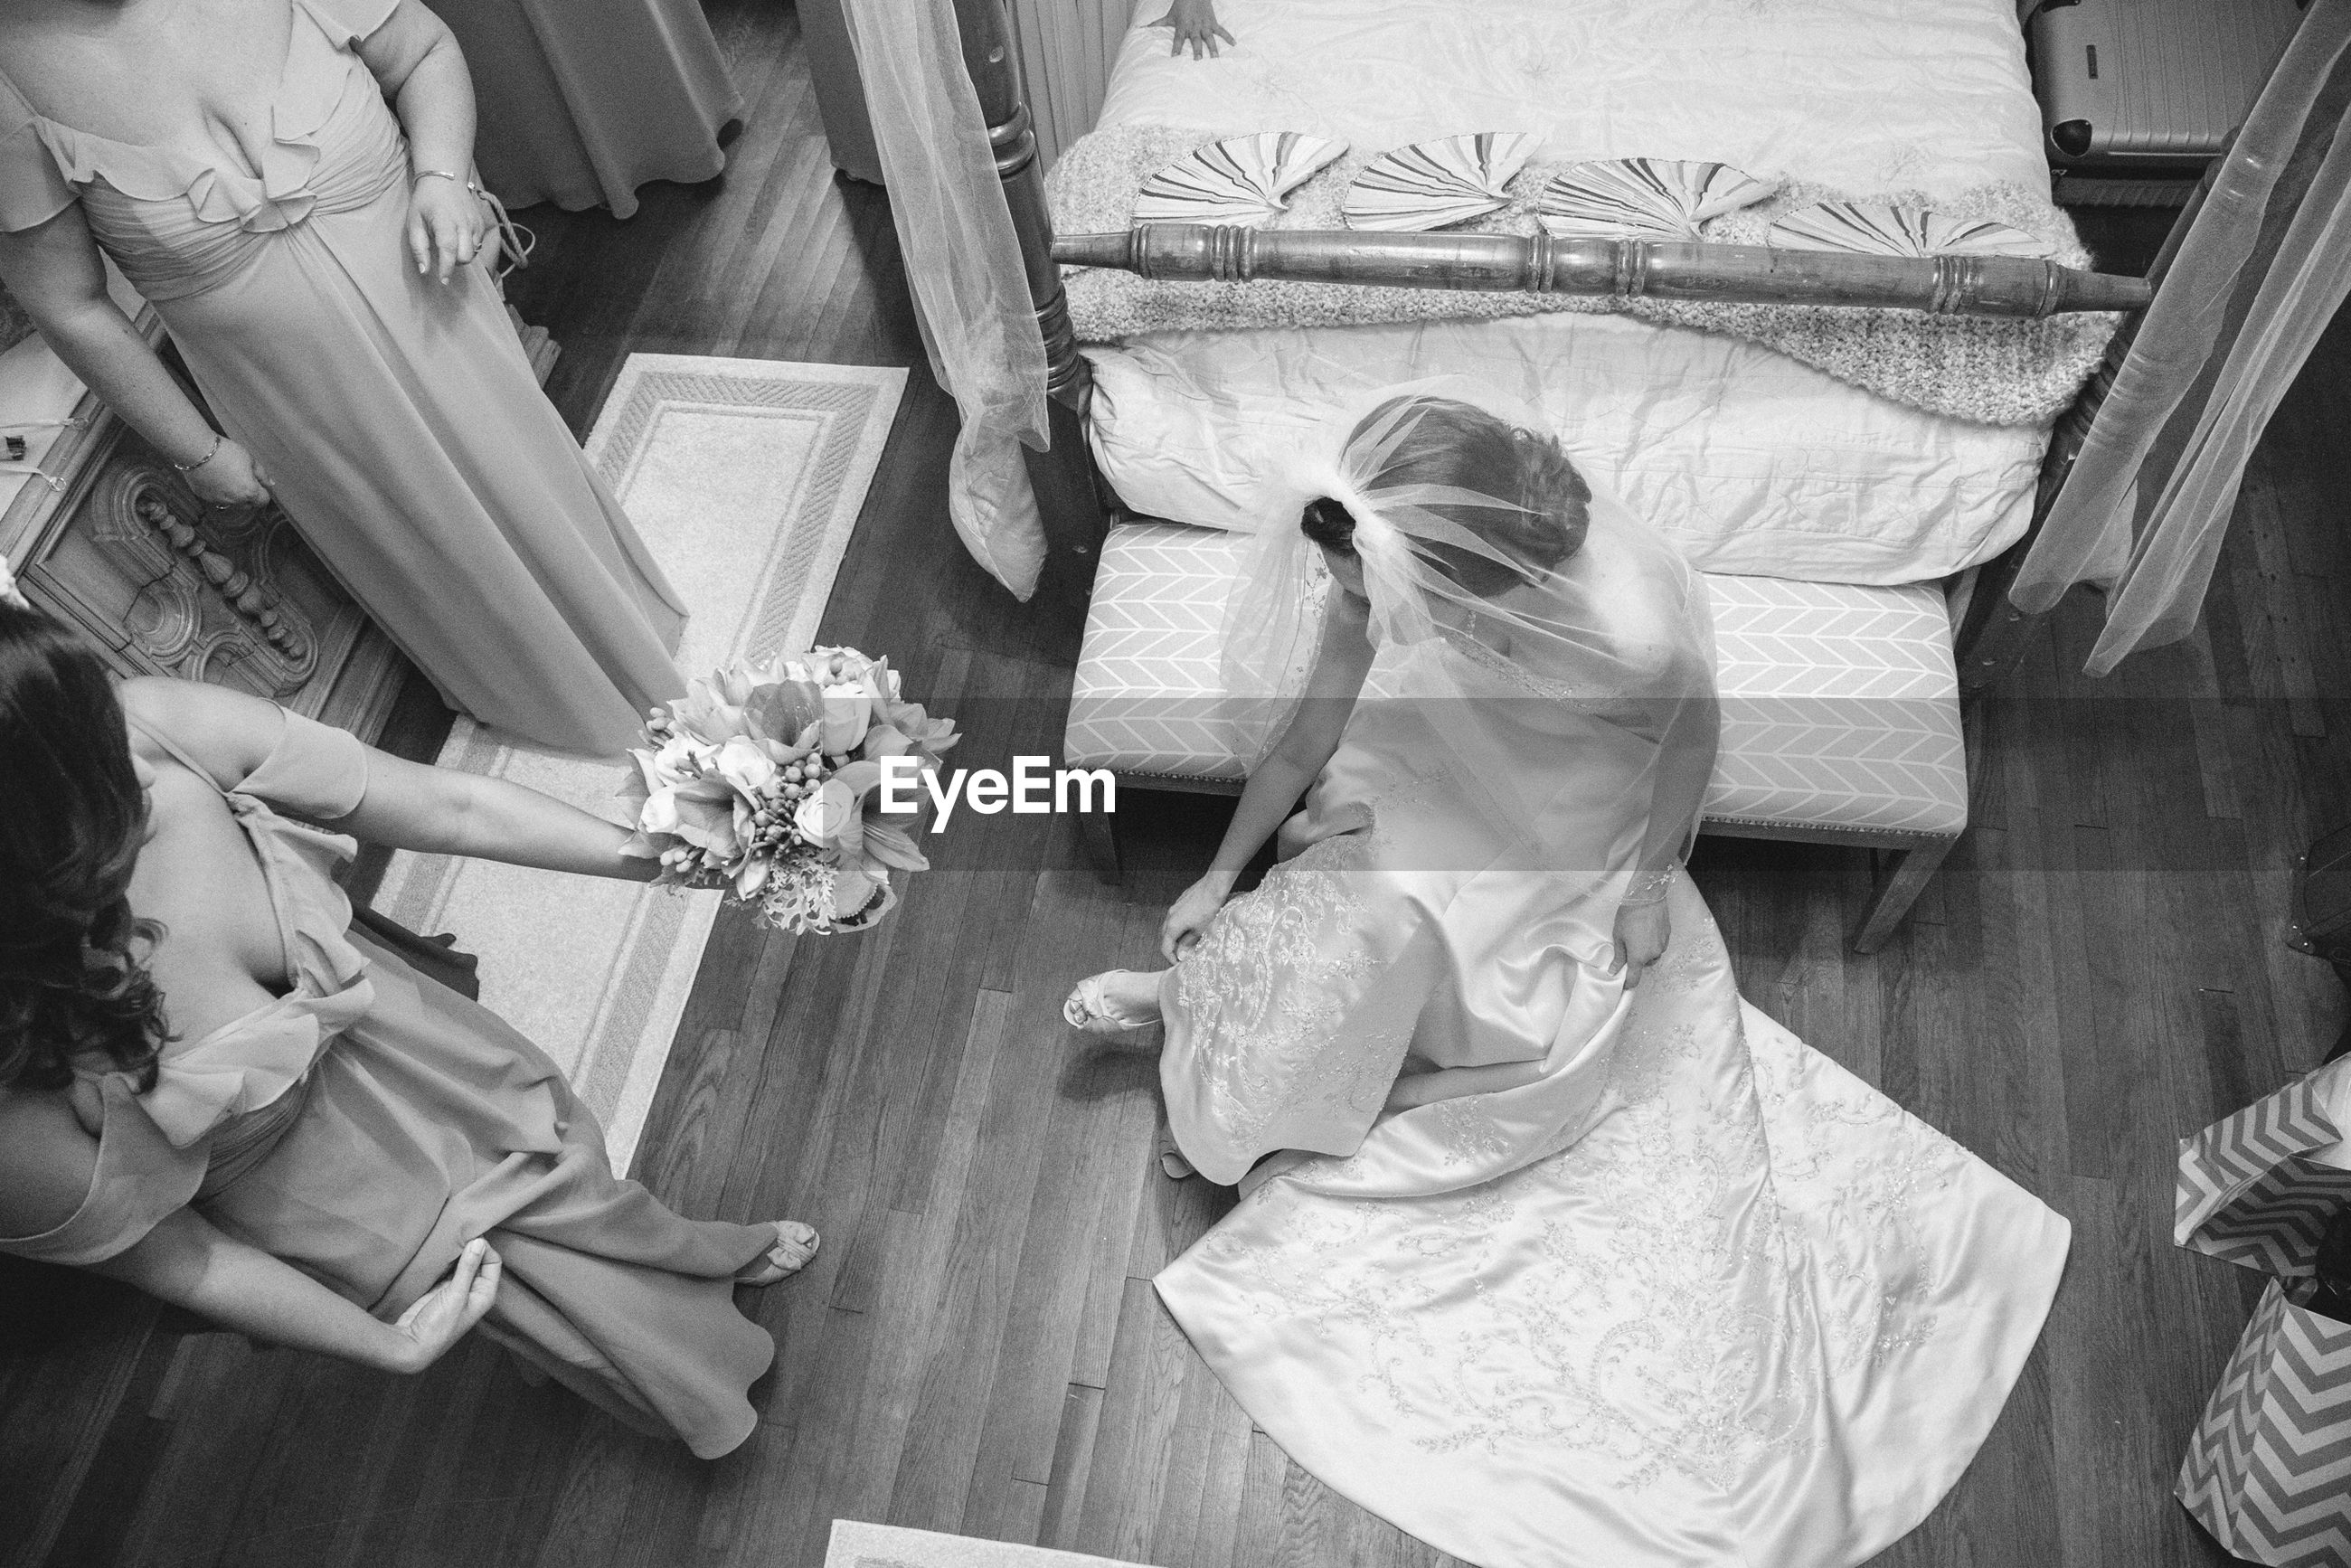 bride, life events, wedding, wedding ceremony, wedding dress, real people, outdoors, close-up, men, bridegroom, day, human body part, people